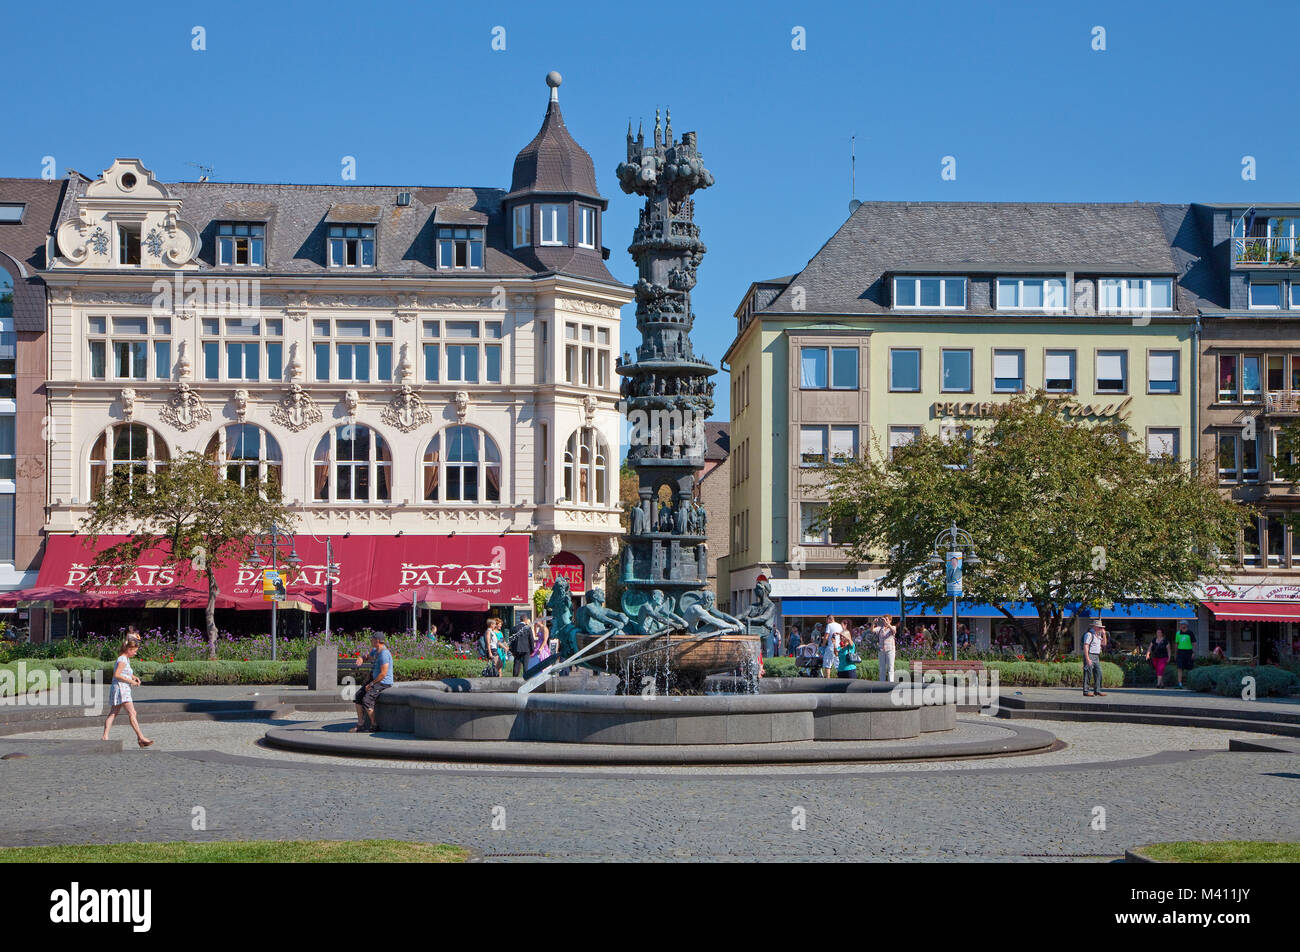 History Column, a elaborate fountain at Josef-Goerres-place shows the history of the city, old town of Coblenz, - Stock Image